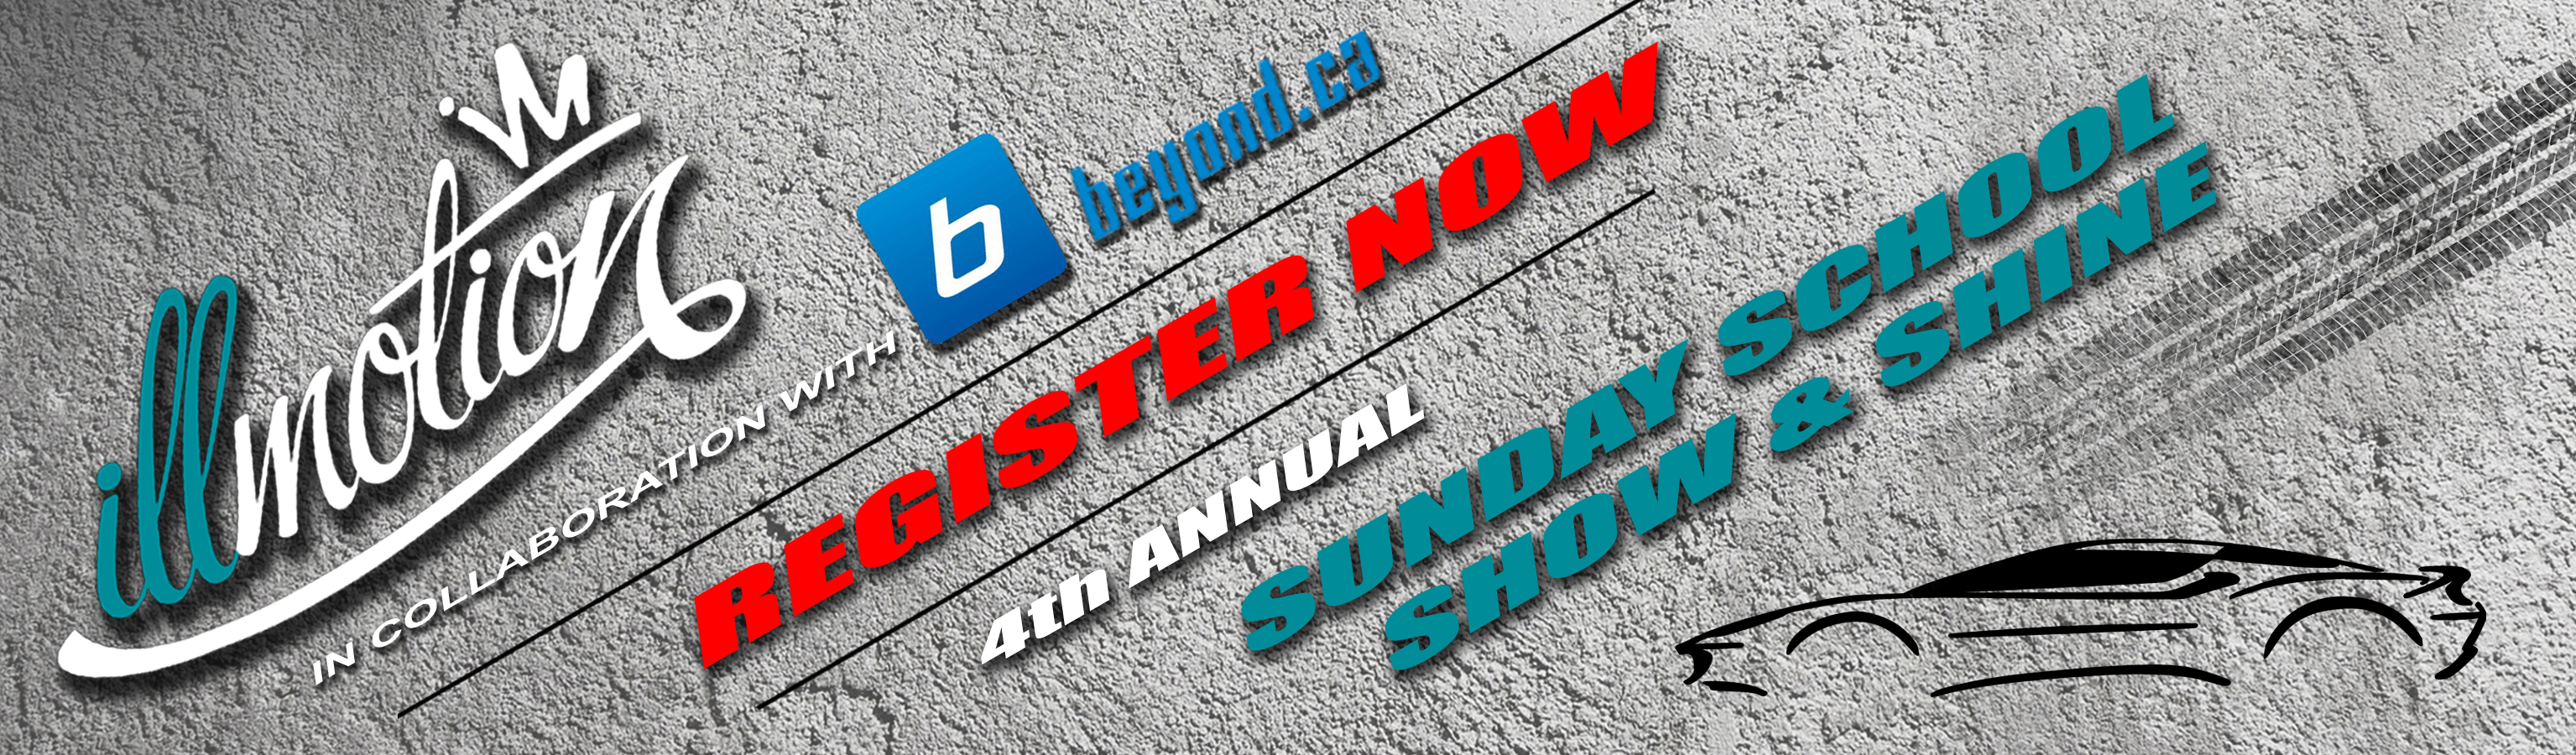 4th Annual Sunday School Register Now copy